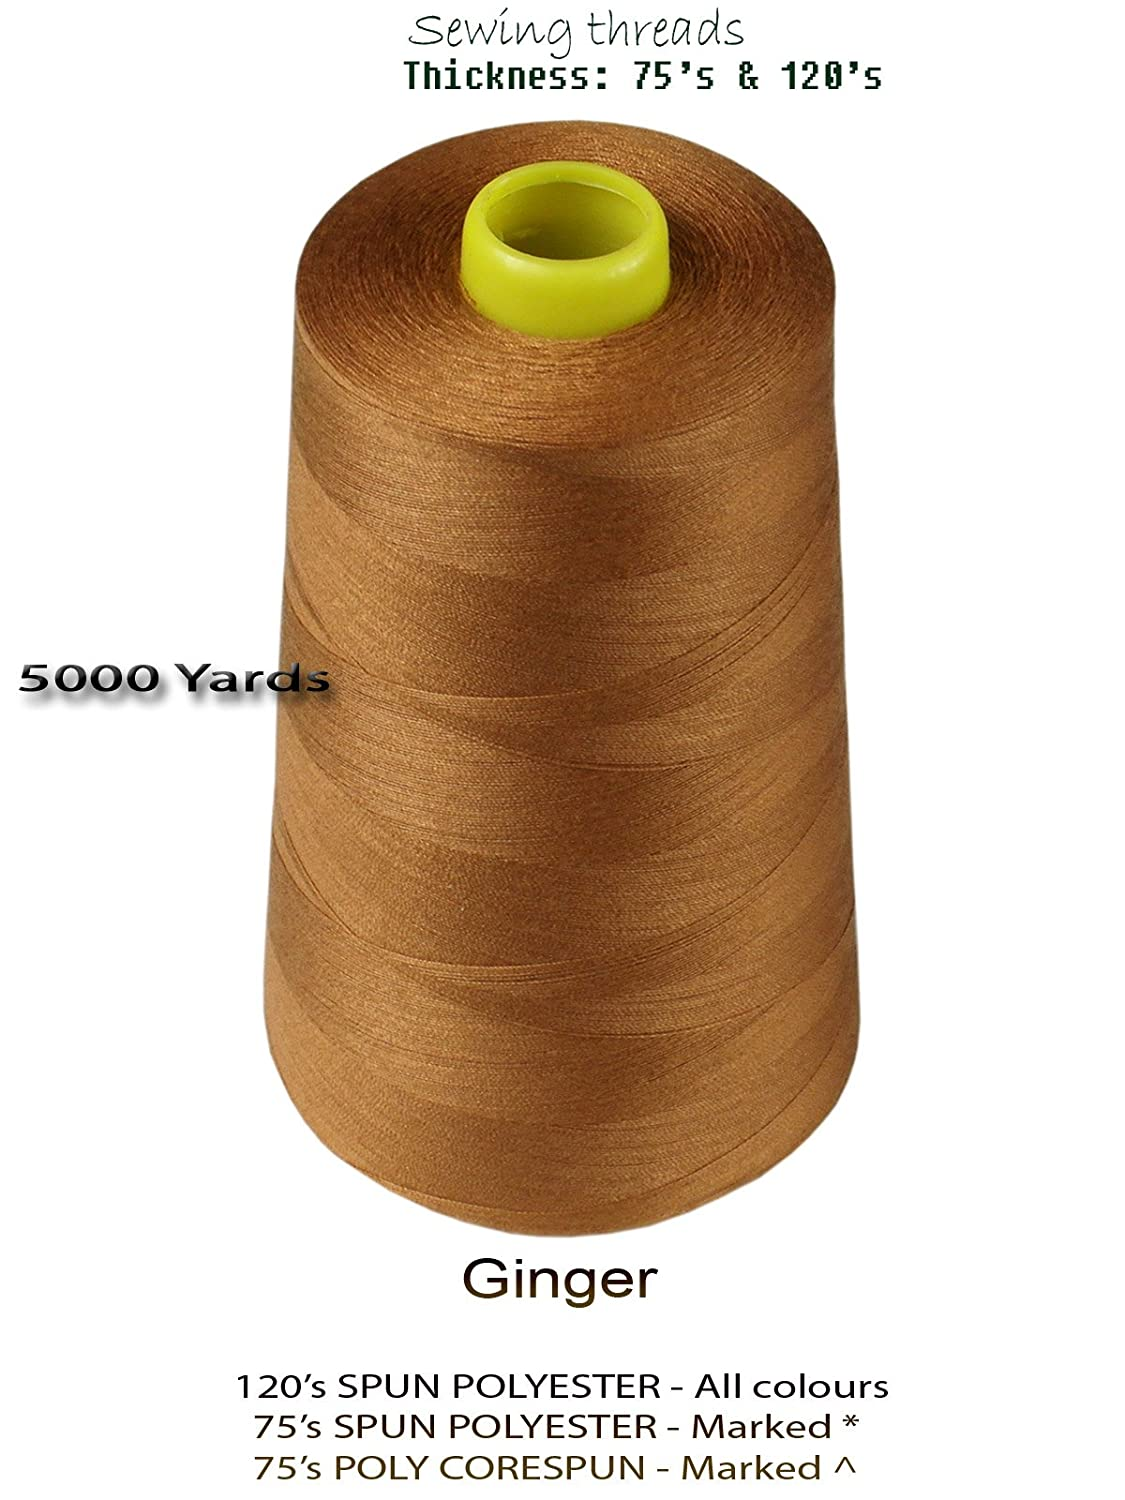 Sewing Thread Spun Polyester 5000 Yards Industrial Ginger Threads Over Locking Cones Pack Of 4 120s Kitchen Home